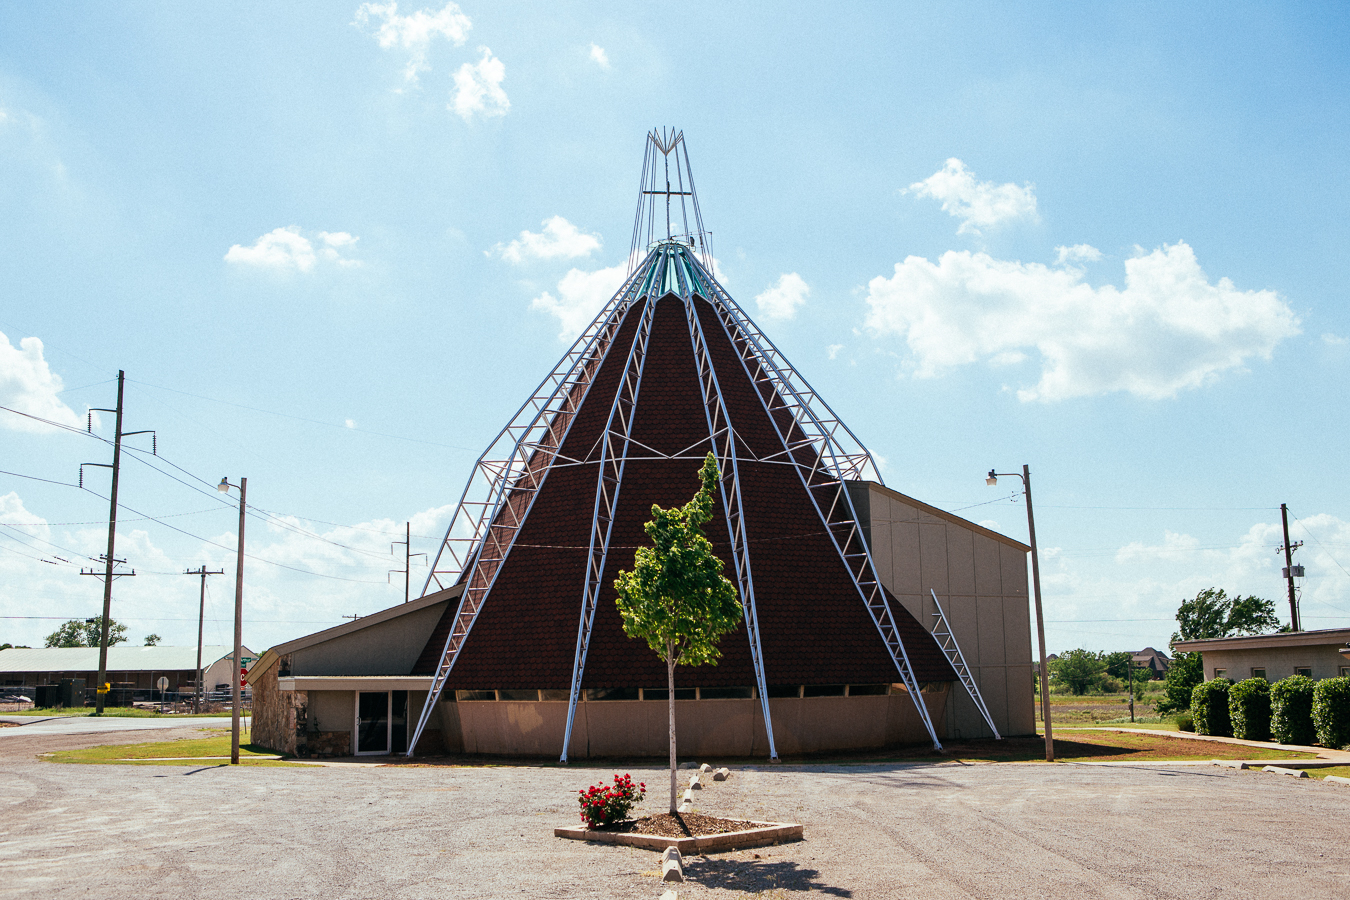 I had read there was an abandoned church which a cool modern architectural design to it, just on the outskirts of Tulsa. I showed up to findit's recently been remodeled and is all locked up. Pretty cool, wish I could've gone inside.